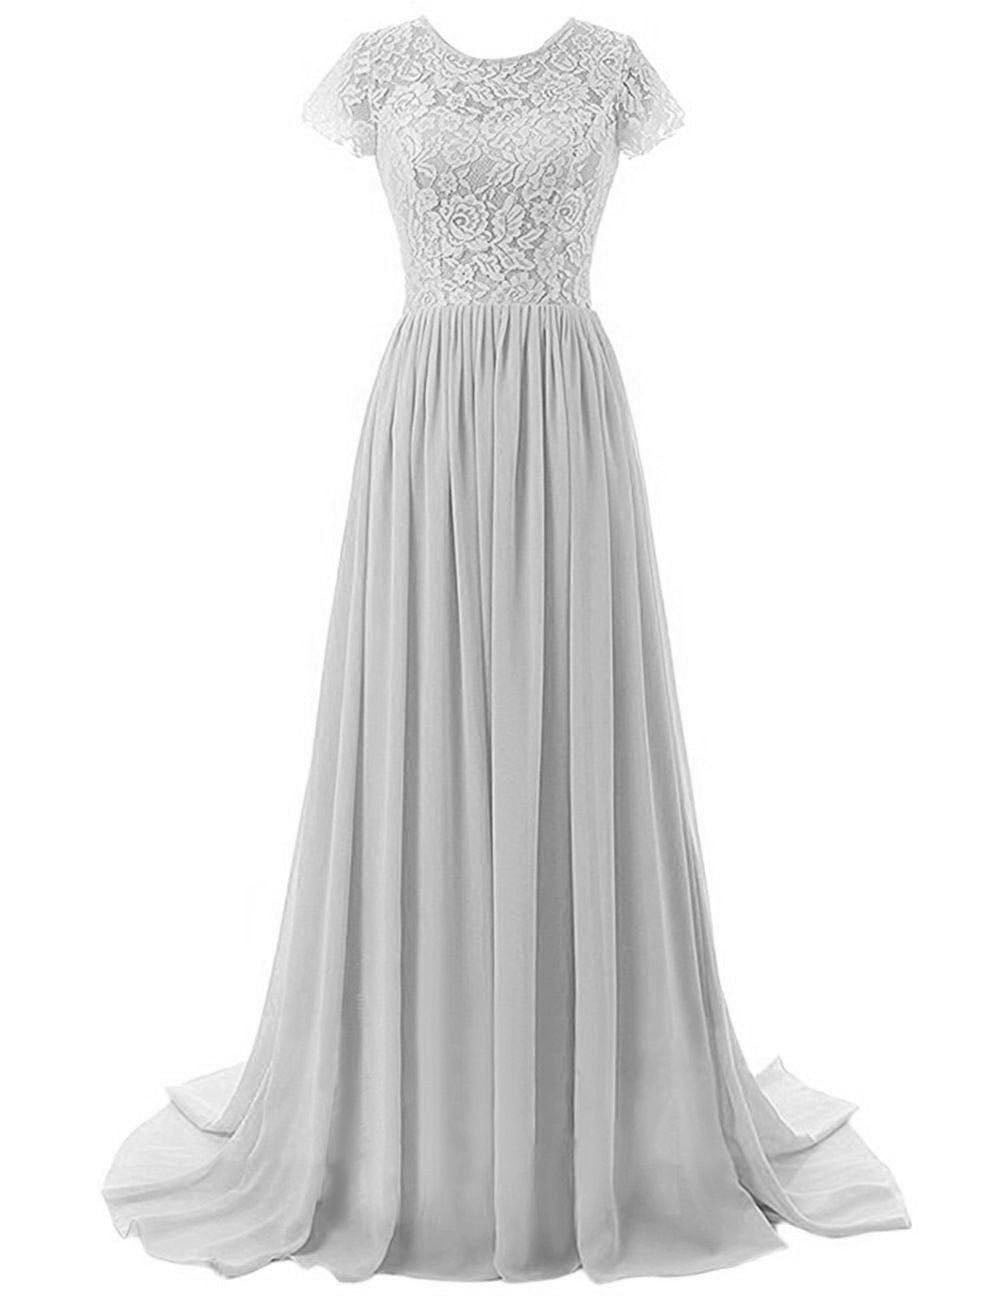 Helena silver grey lace chiffon short sleeved long maxi bridesmaid wedding bridal prom evening formal occasion ballgown dress uk online loulous bridal boutique